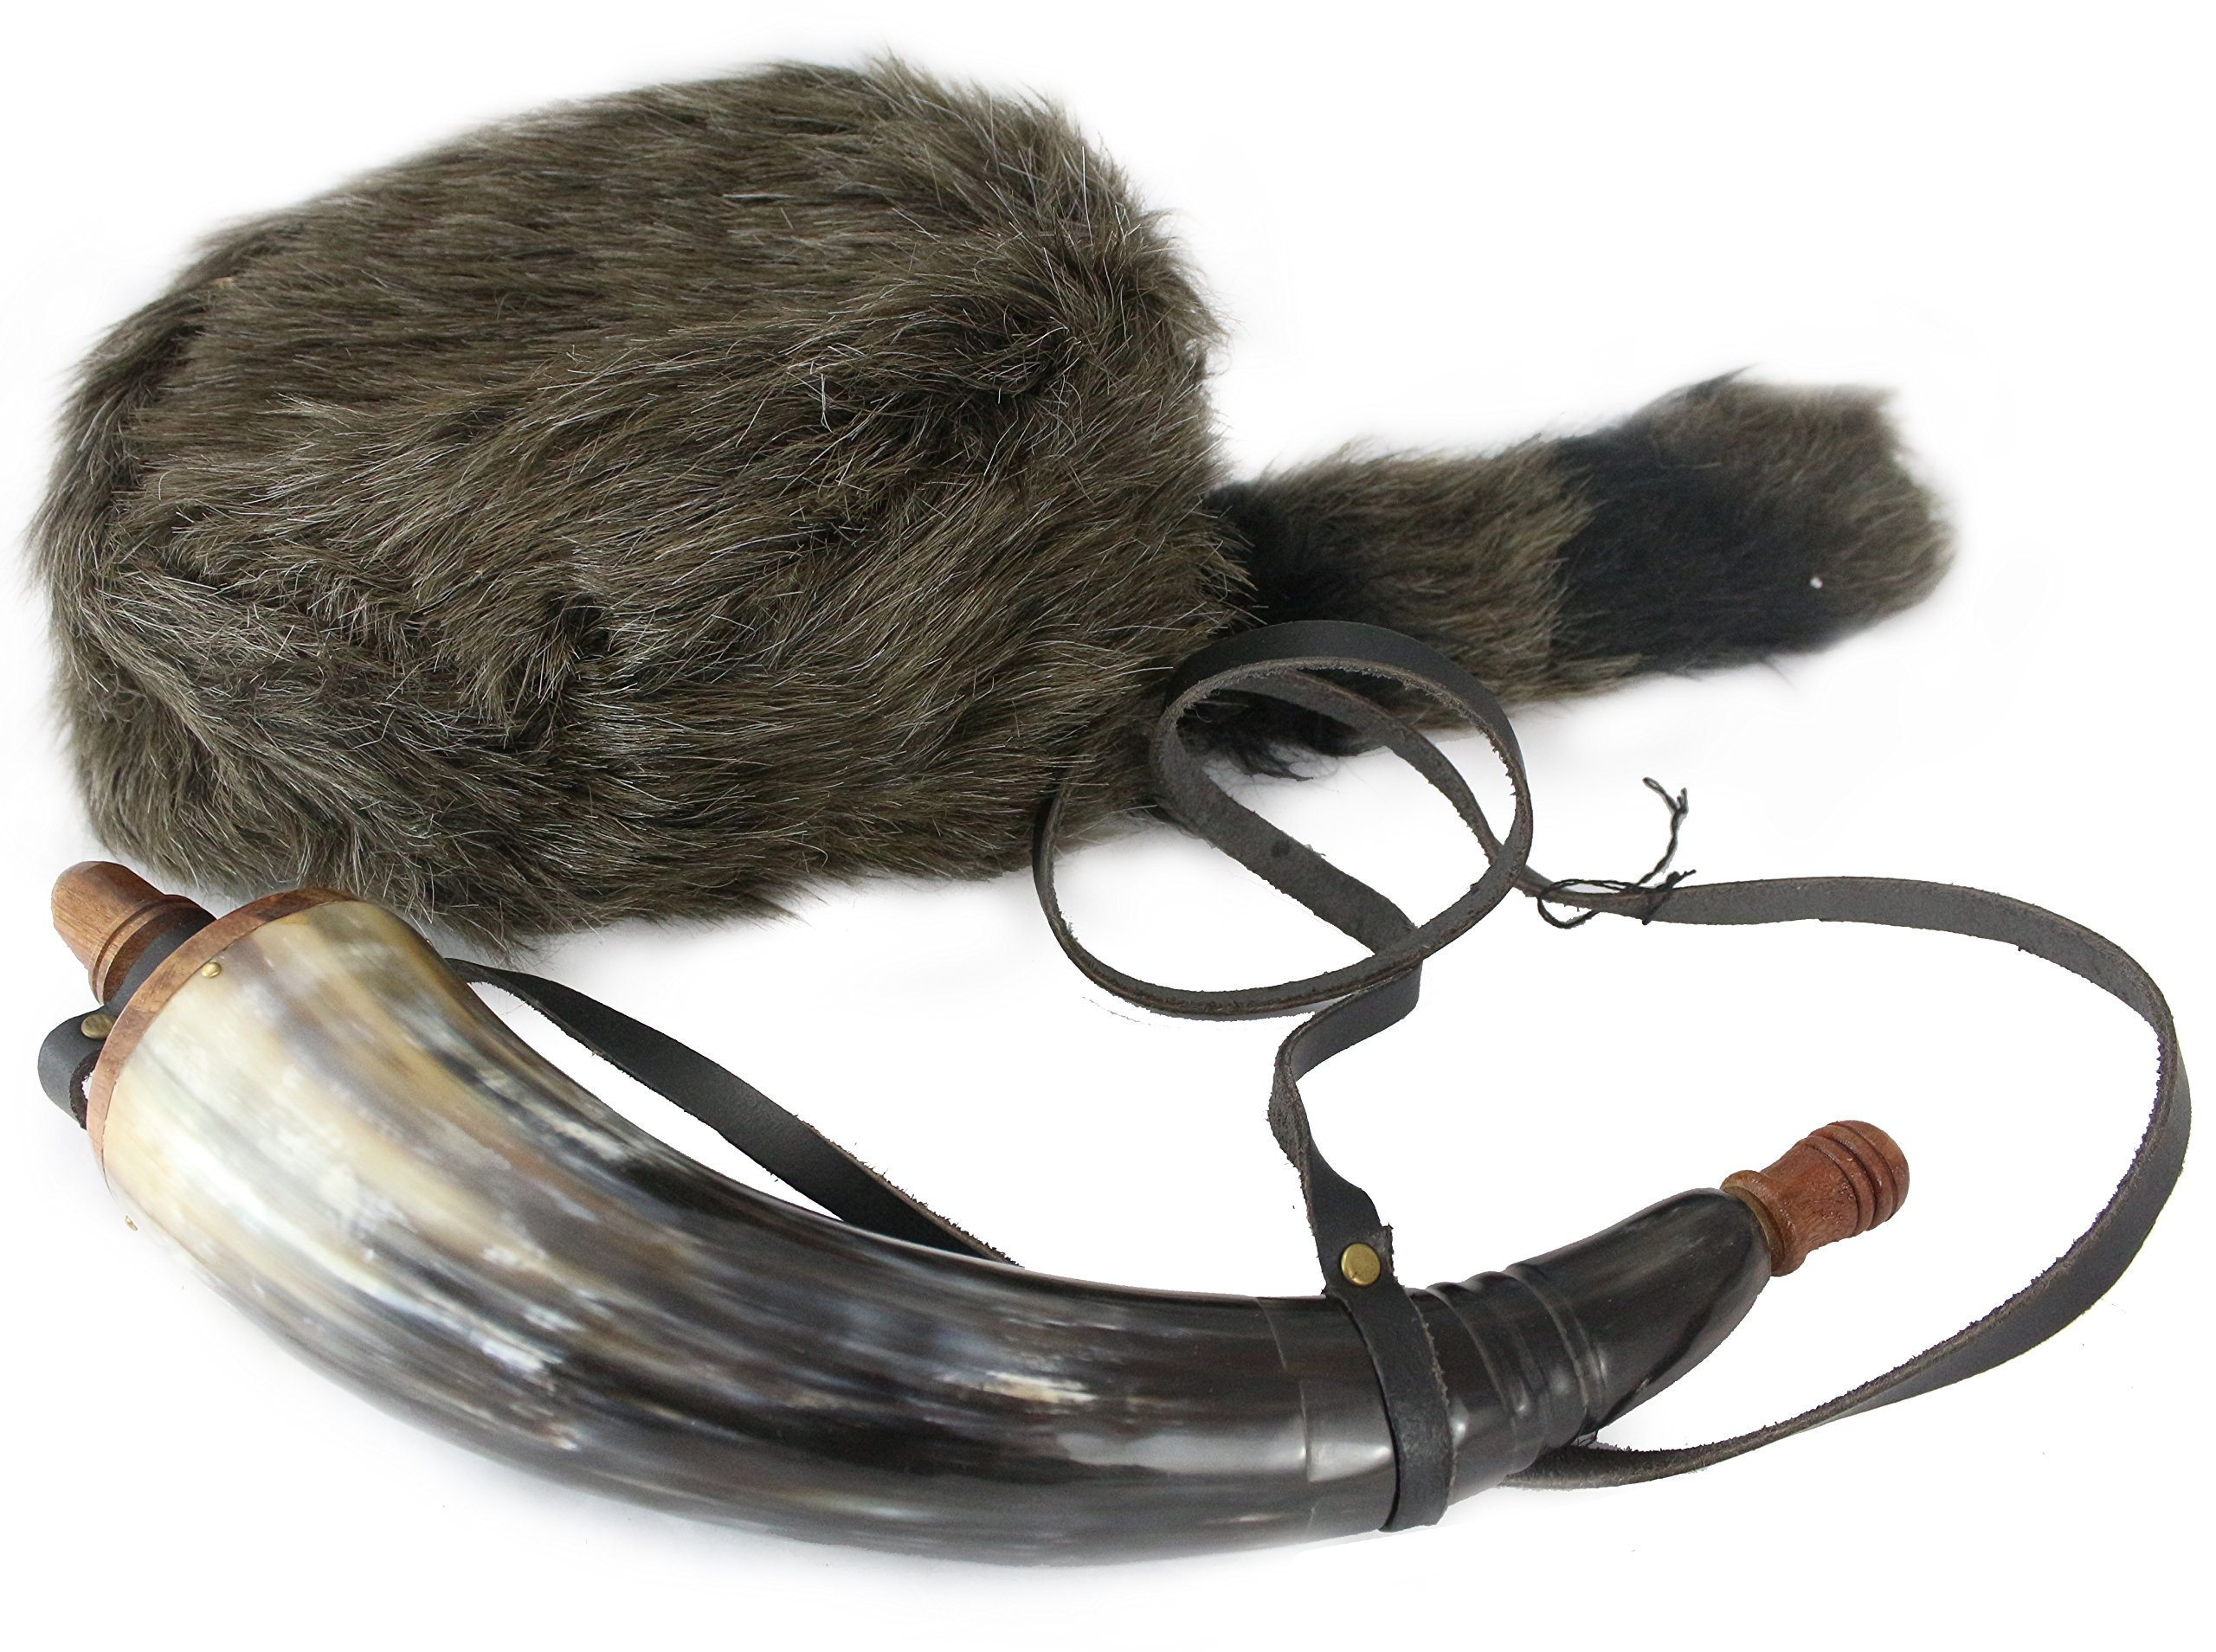 Well Pack Box Davy Crockett Raccoon Tail Hat Daniel Boone Soft Fake Fur and Powder Horn Prop Costume Great for Halloween and Costume Parties